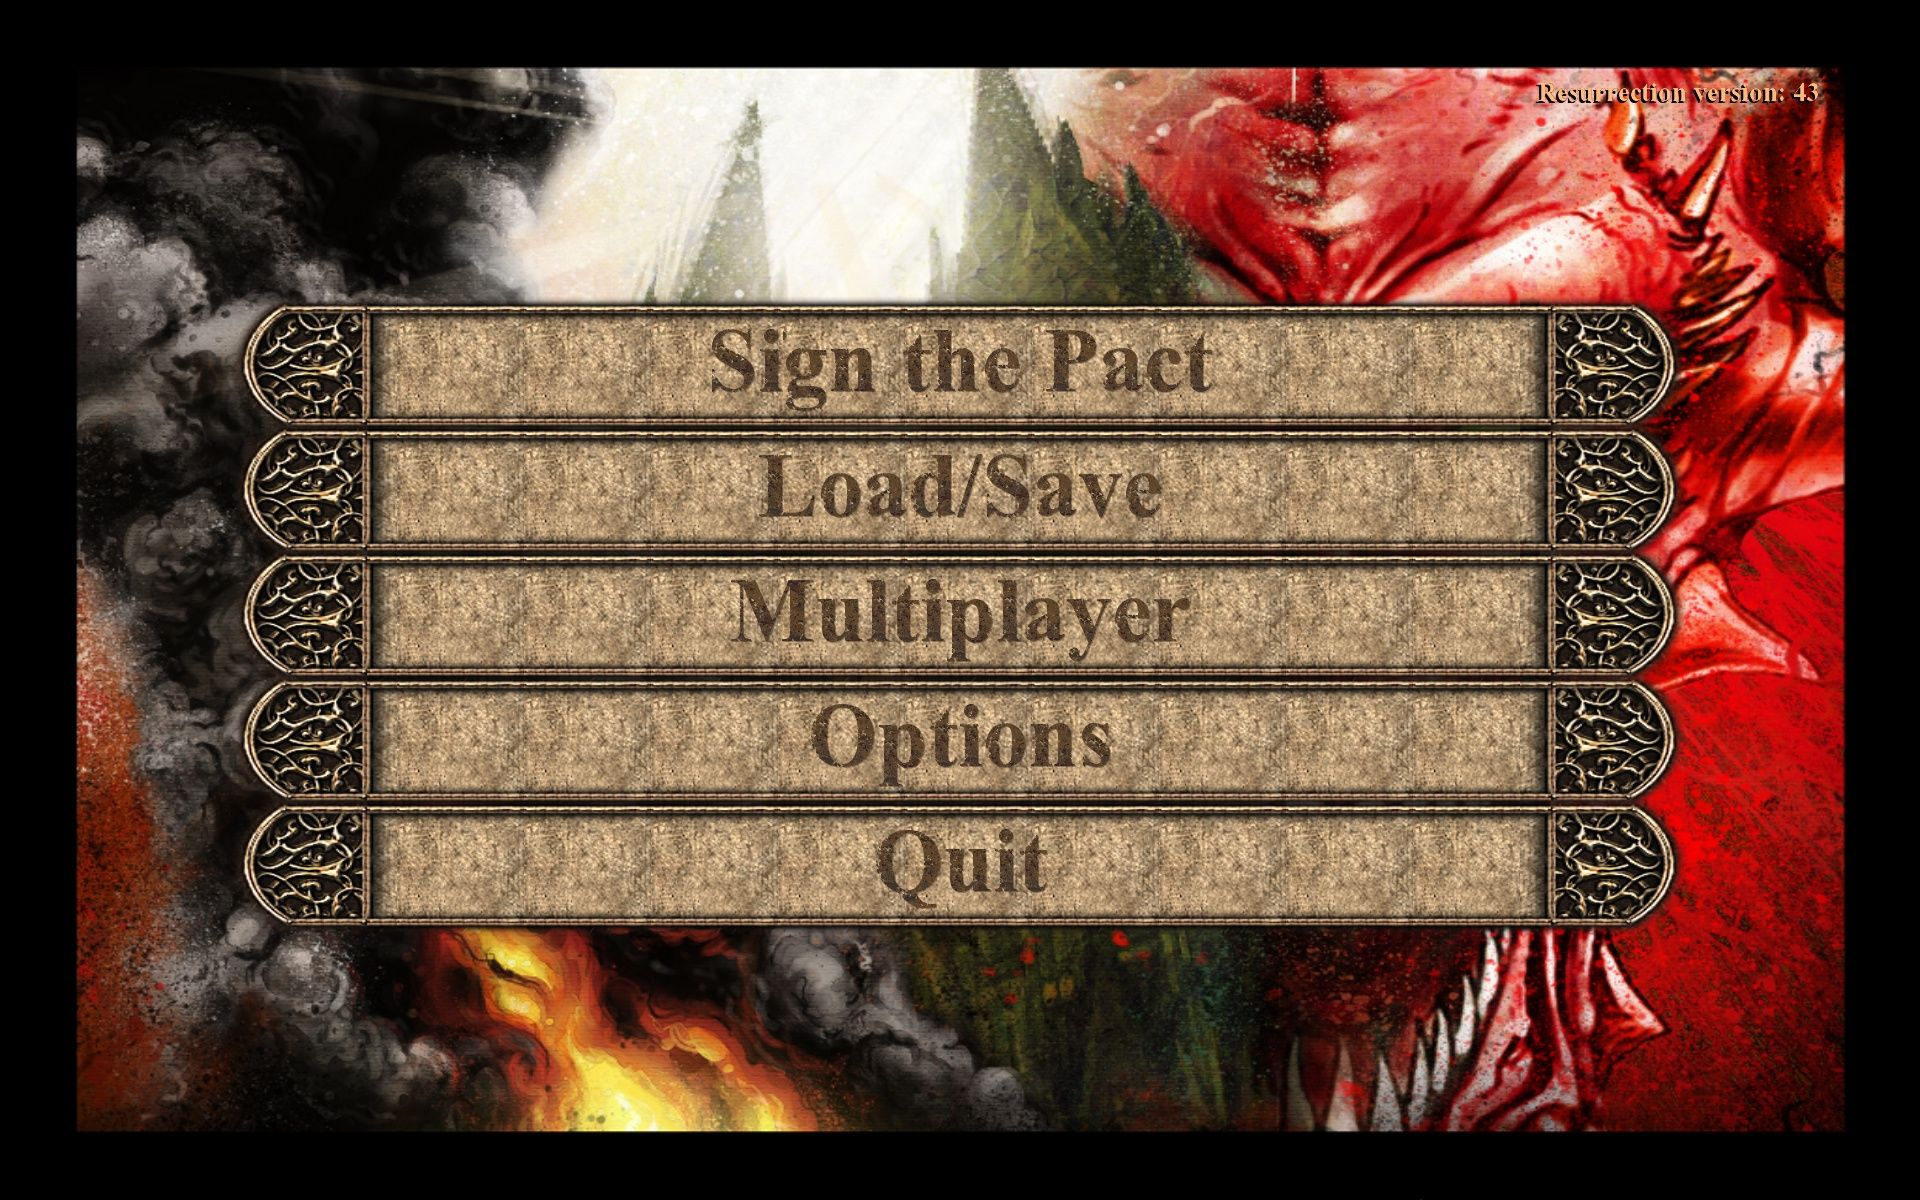 Painkiller: Resurrection Windows Main Menu